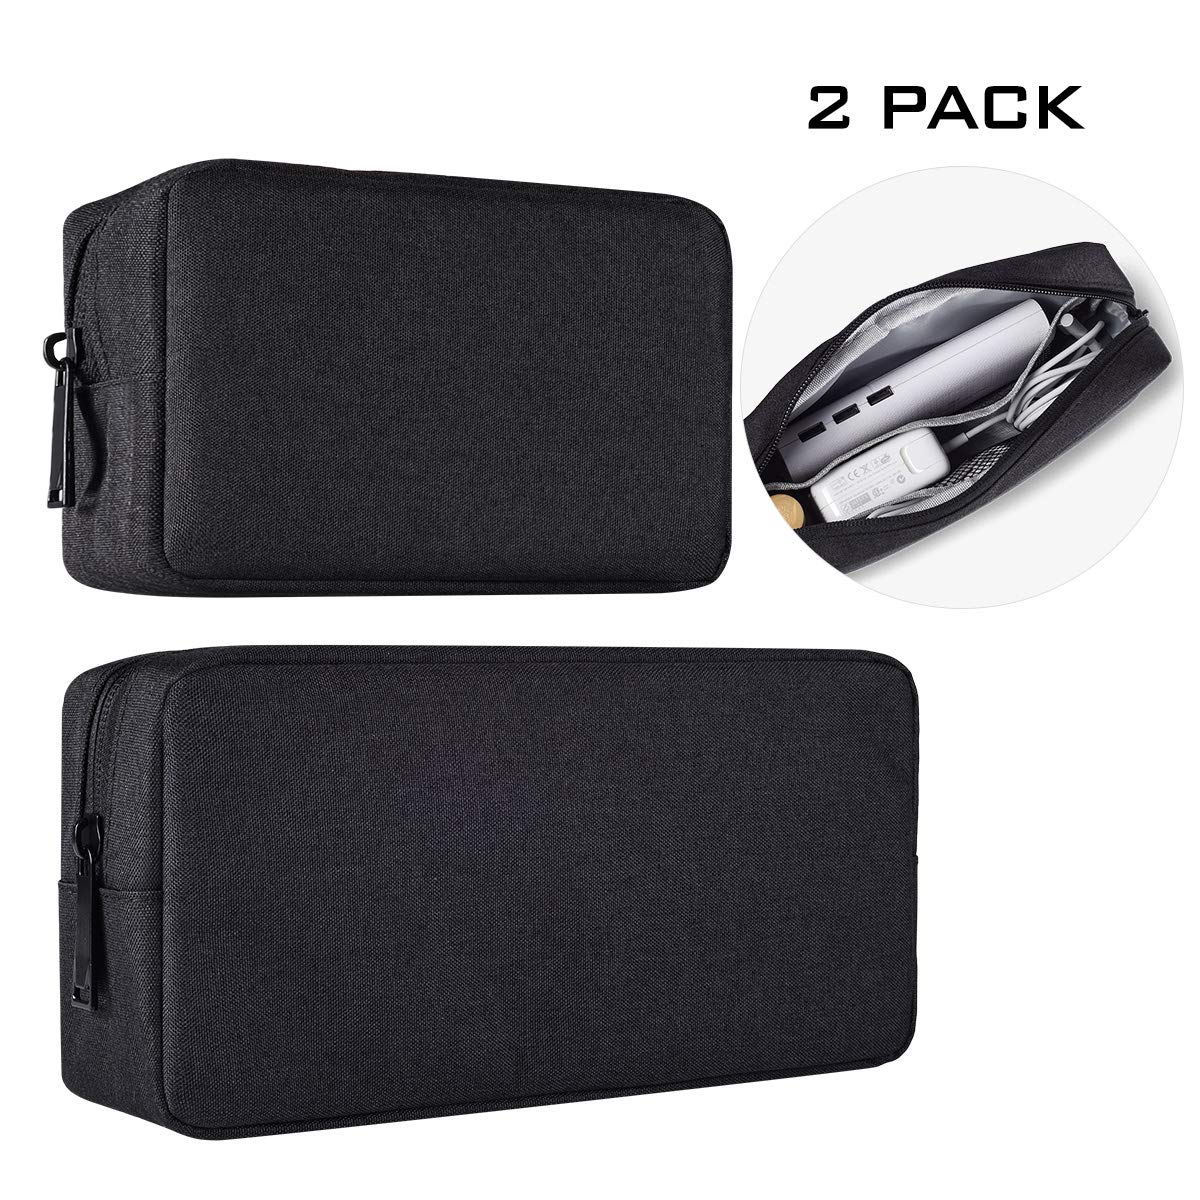 Universal Electronics Accessories Case, 2-Pack Portable Soft Carrying Case Bag Wire Cable Organizer for Hard Drive, Power Adapter, Laptop Mouse, Cosmetics Kit, Small+Big-Black